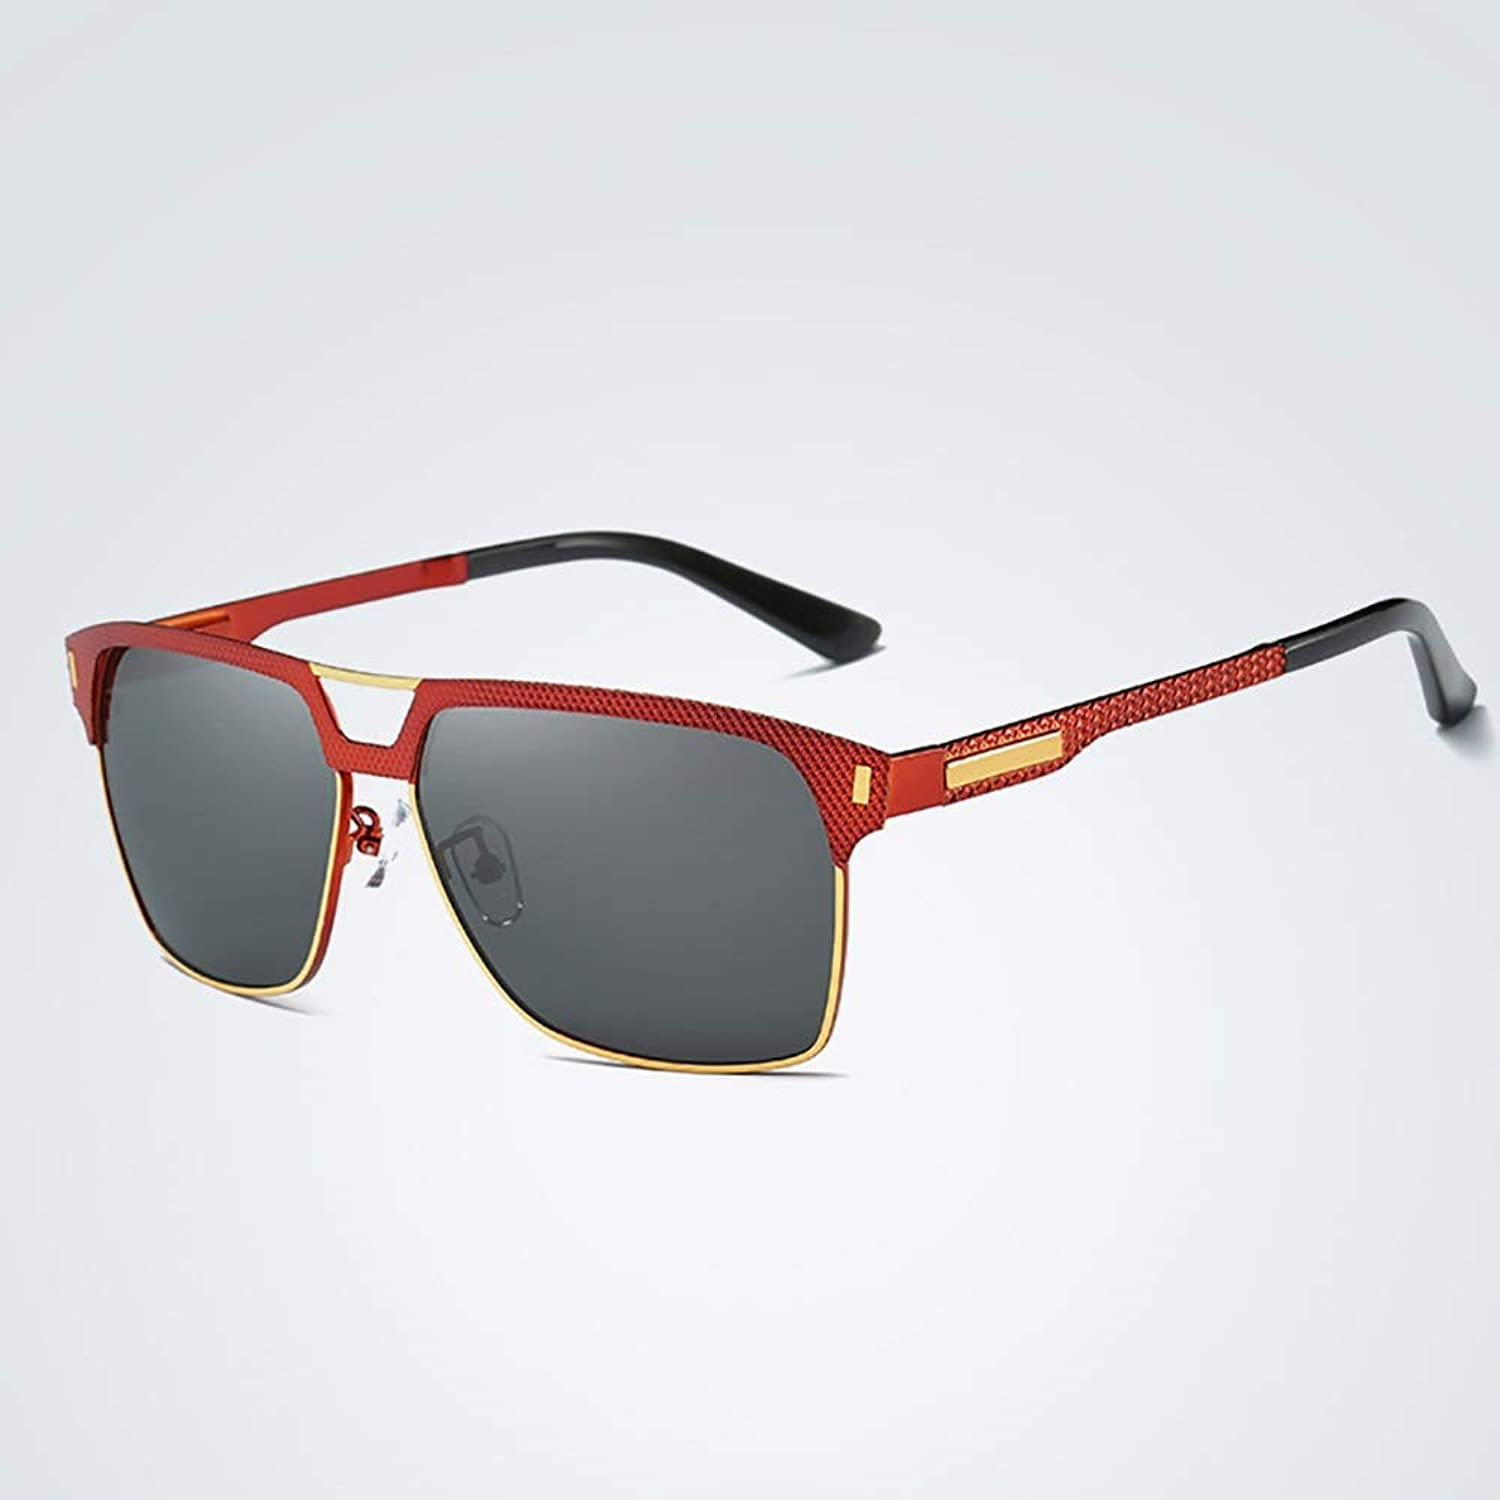 Classic Fishing Driving Polarized Sunglasses, Spring Legs for Men Women. (color   Red Frame)